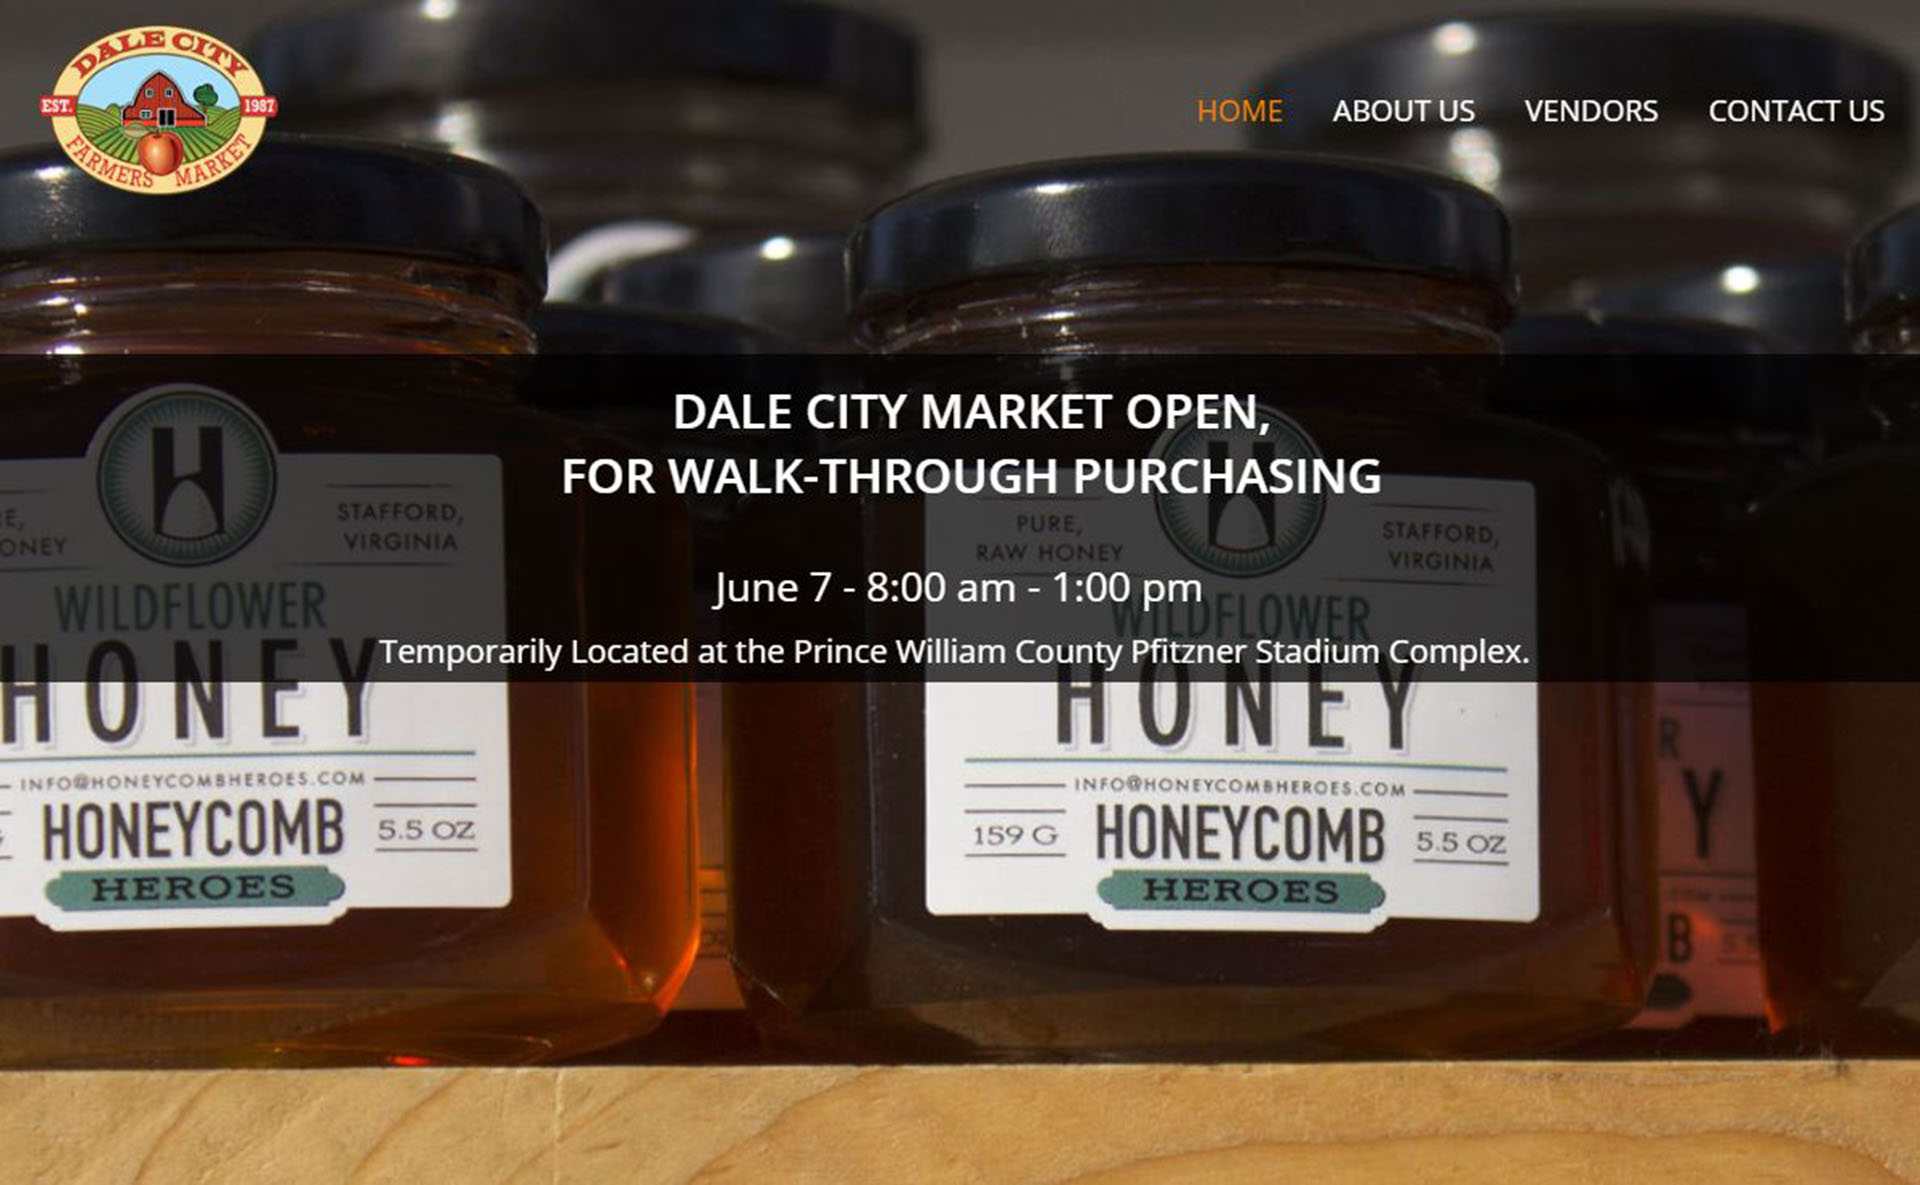 Dale City Farmers Market open June 7